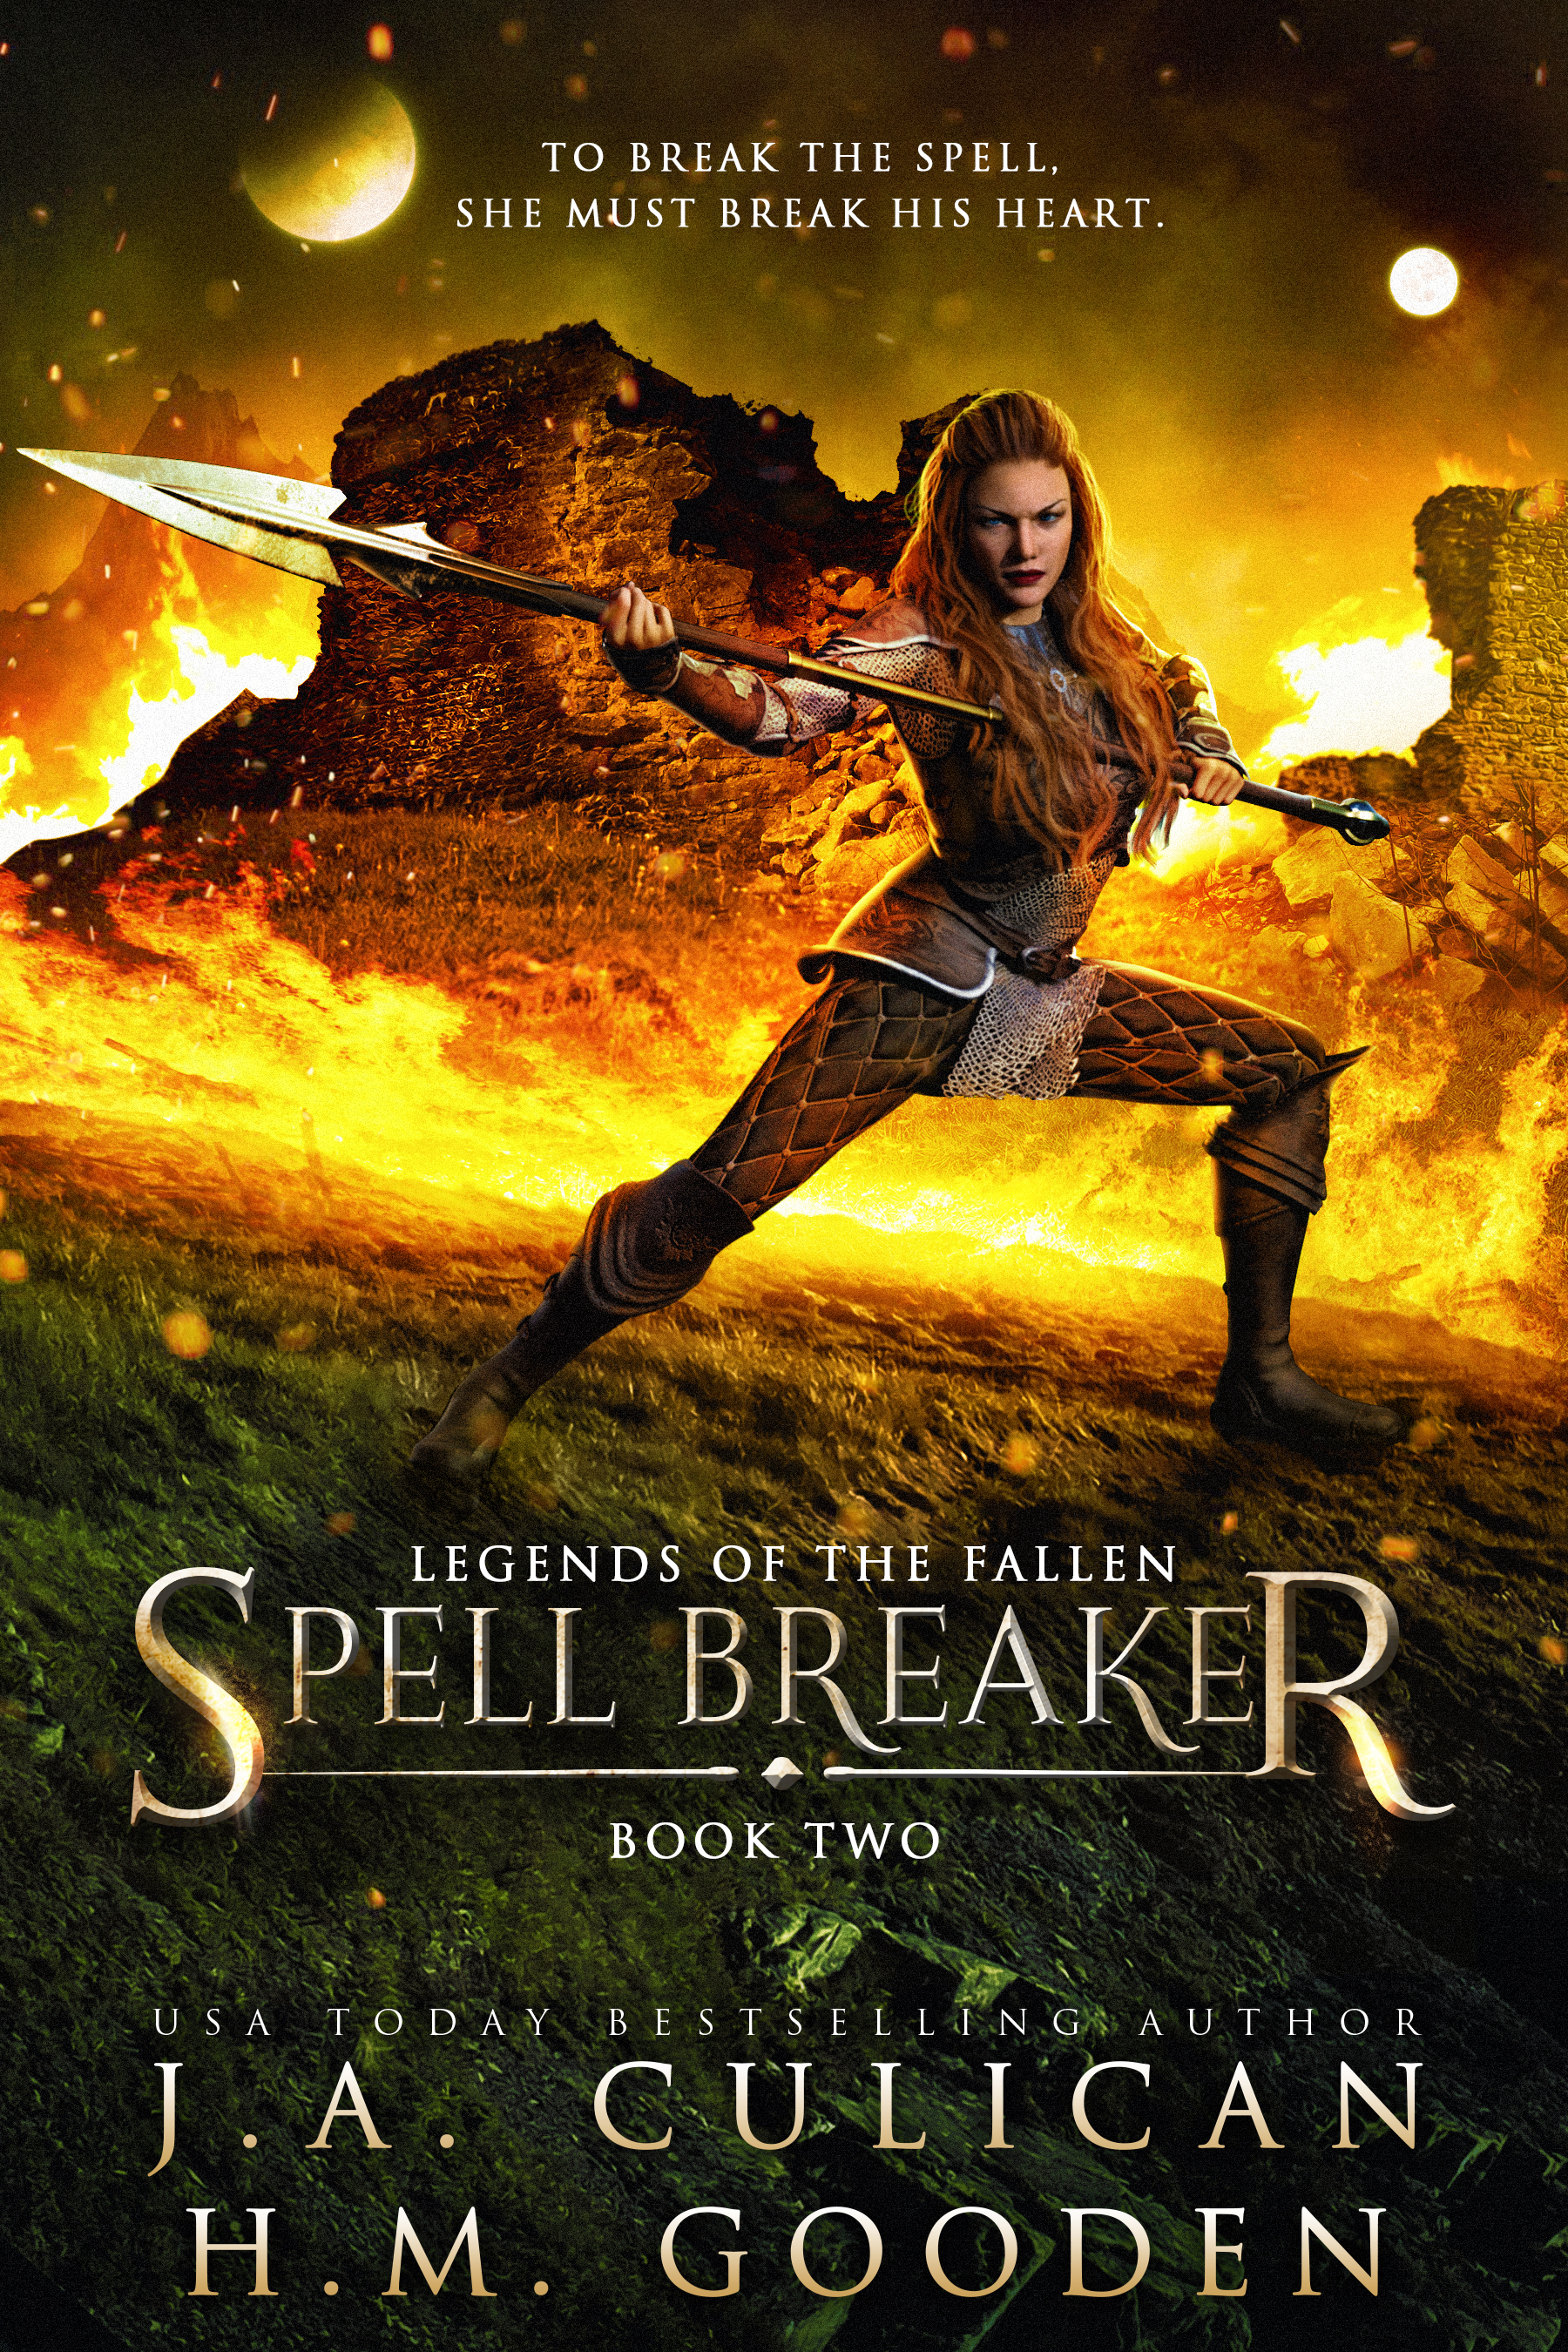 Legend of the Fallen book 2 - Spell Breaker